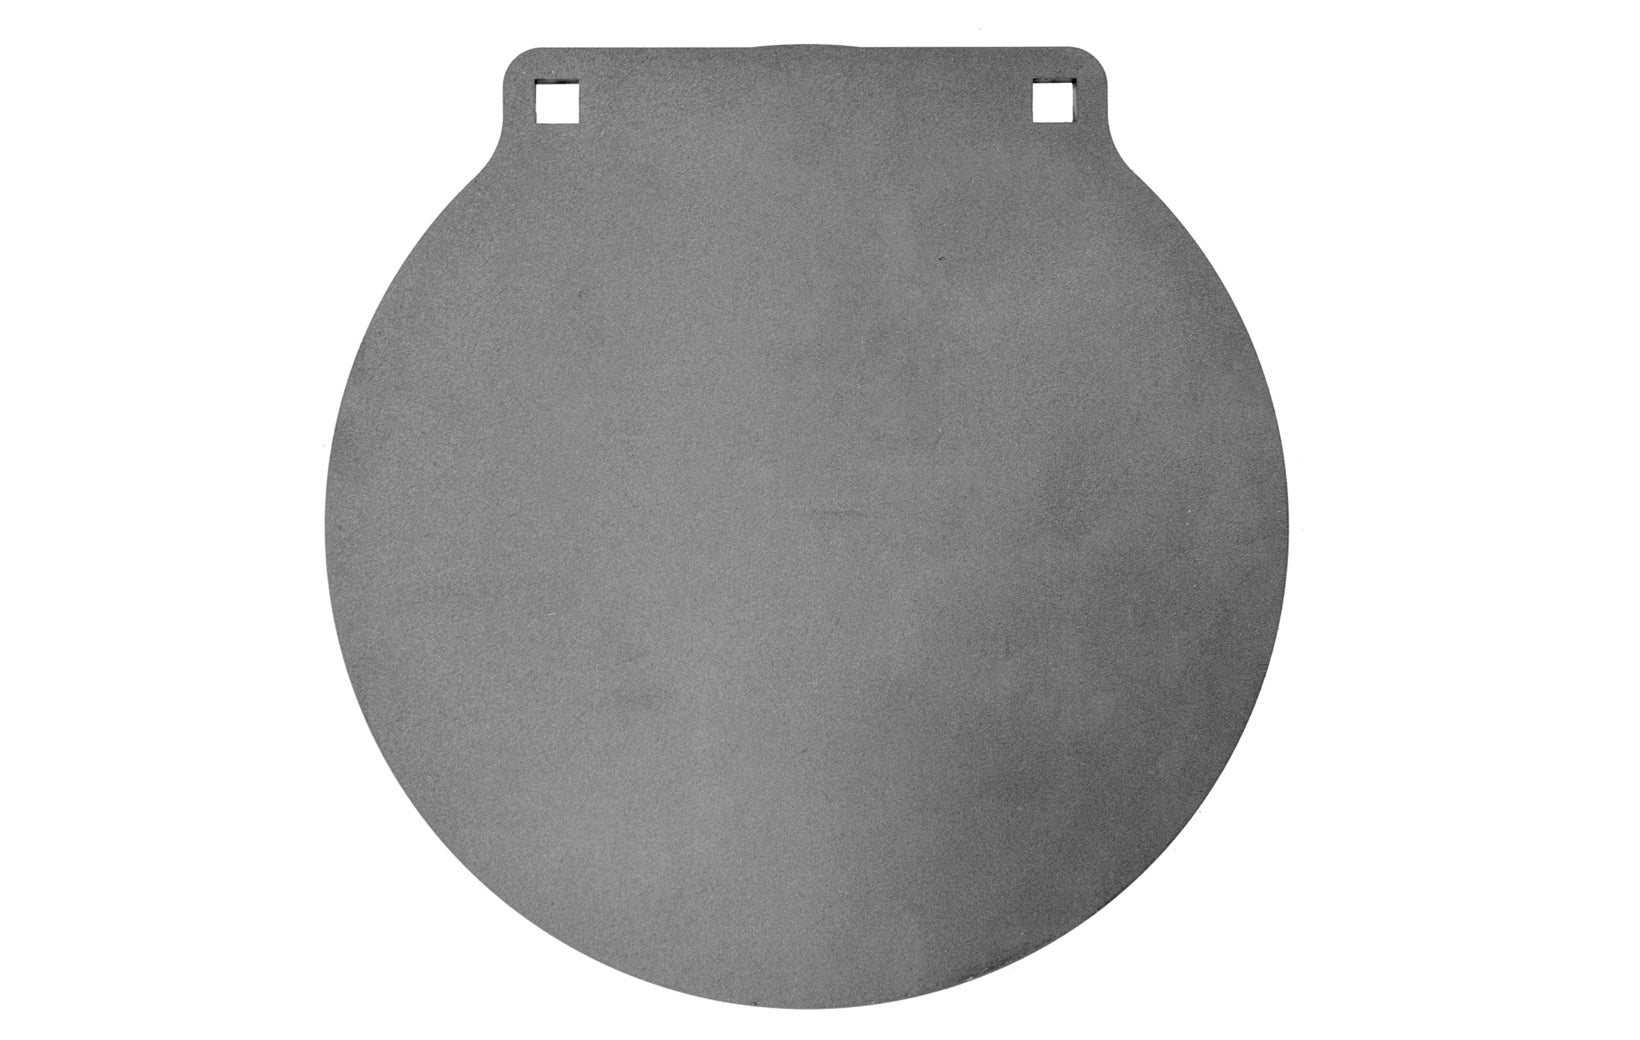 Competition Target Systems Steel Plates come in a variety of sizes.